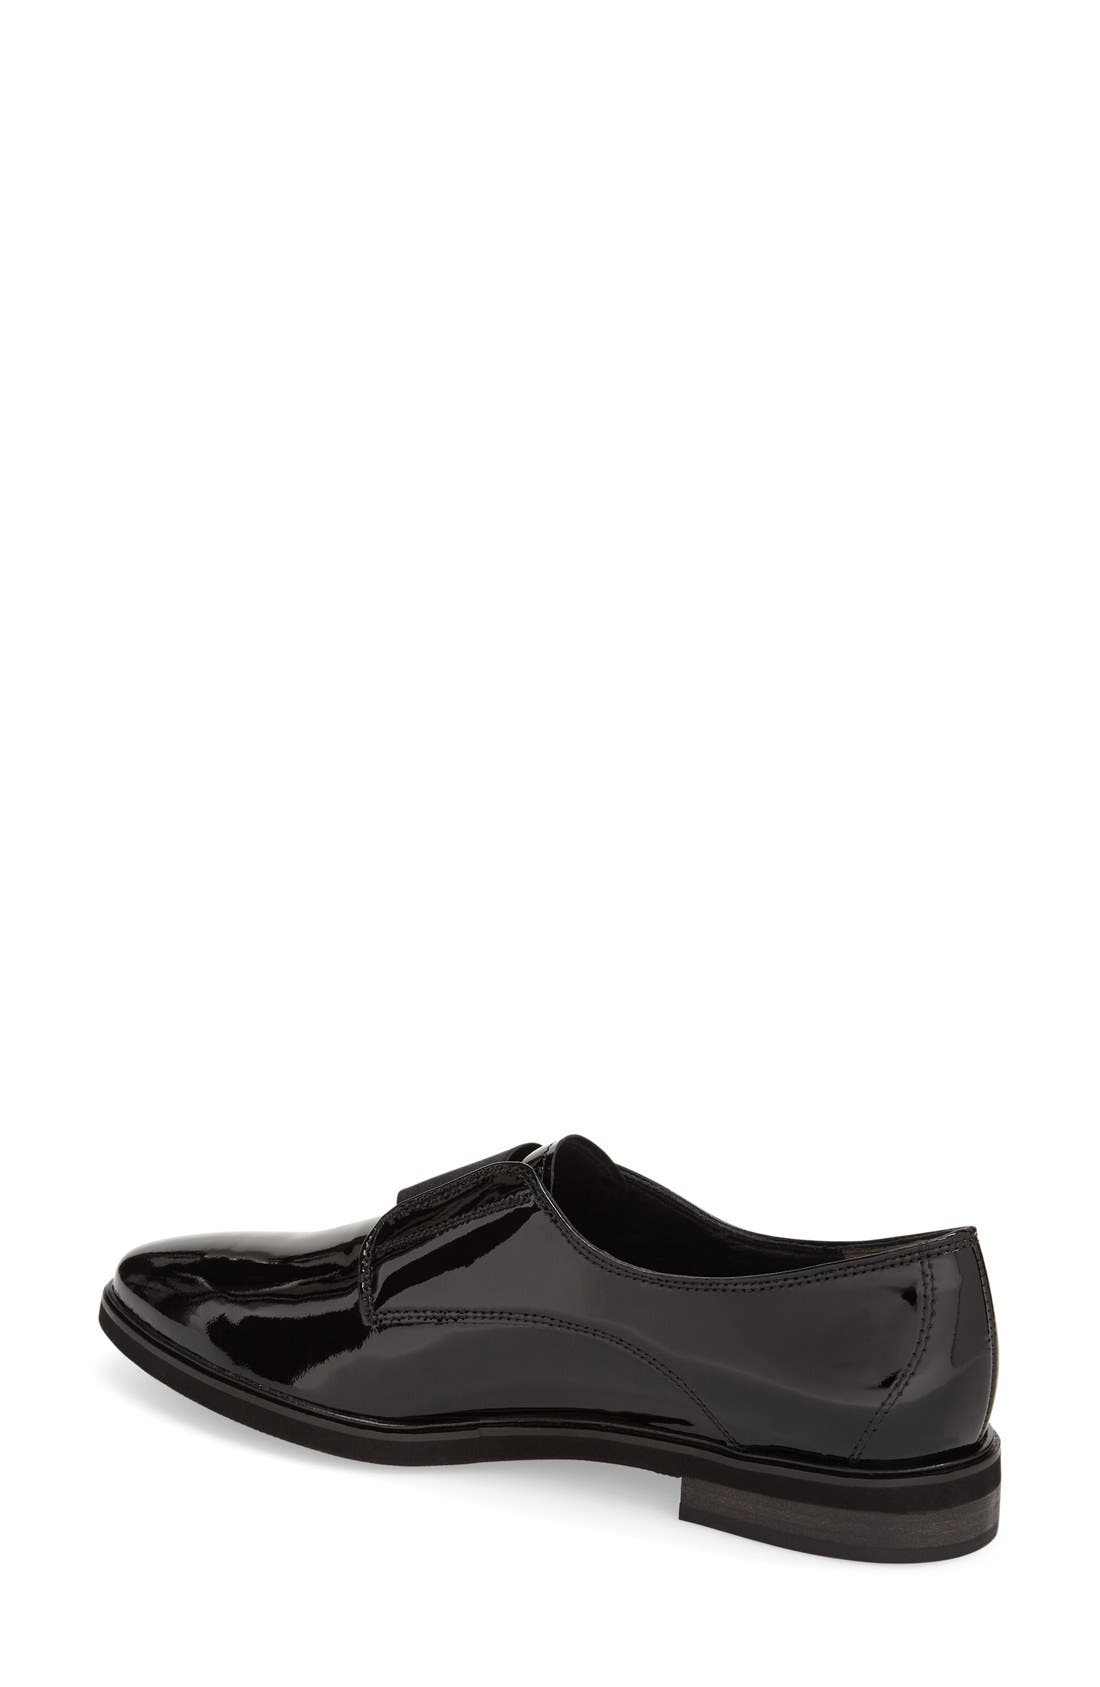 Alternate Image 2  - Paul Green 'Evana' Oxford Loafer (Women)